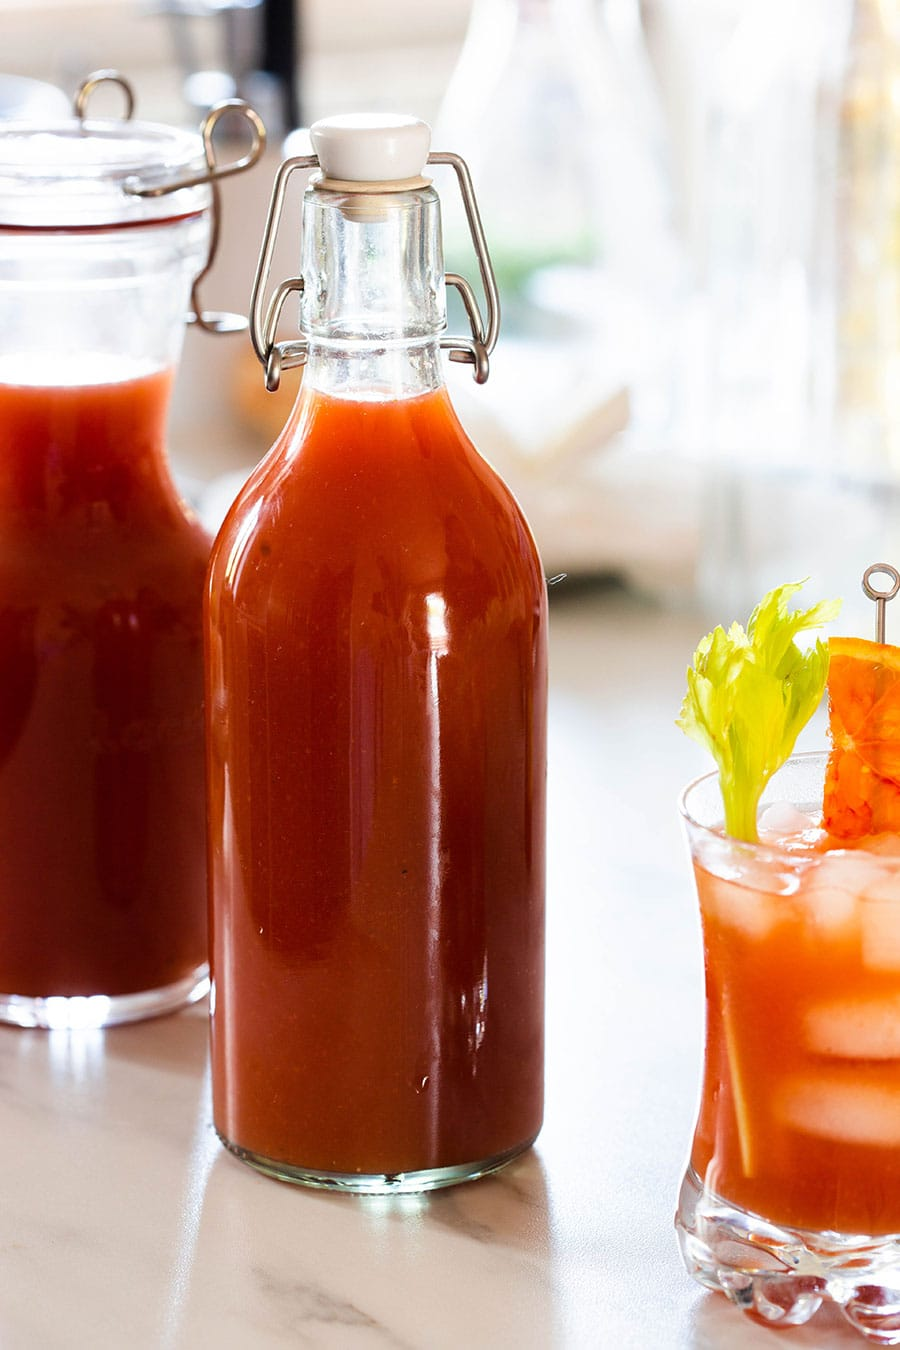 Homemade tomato and clam juice.